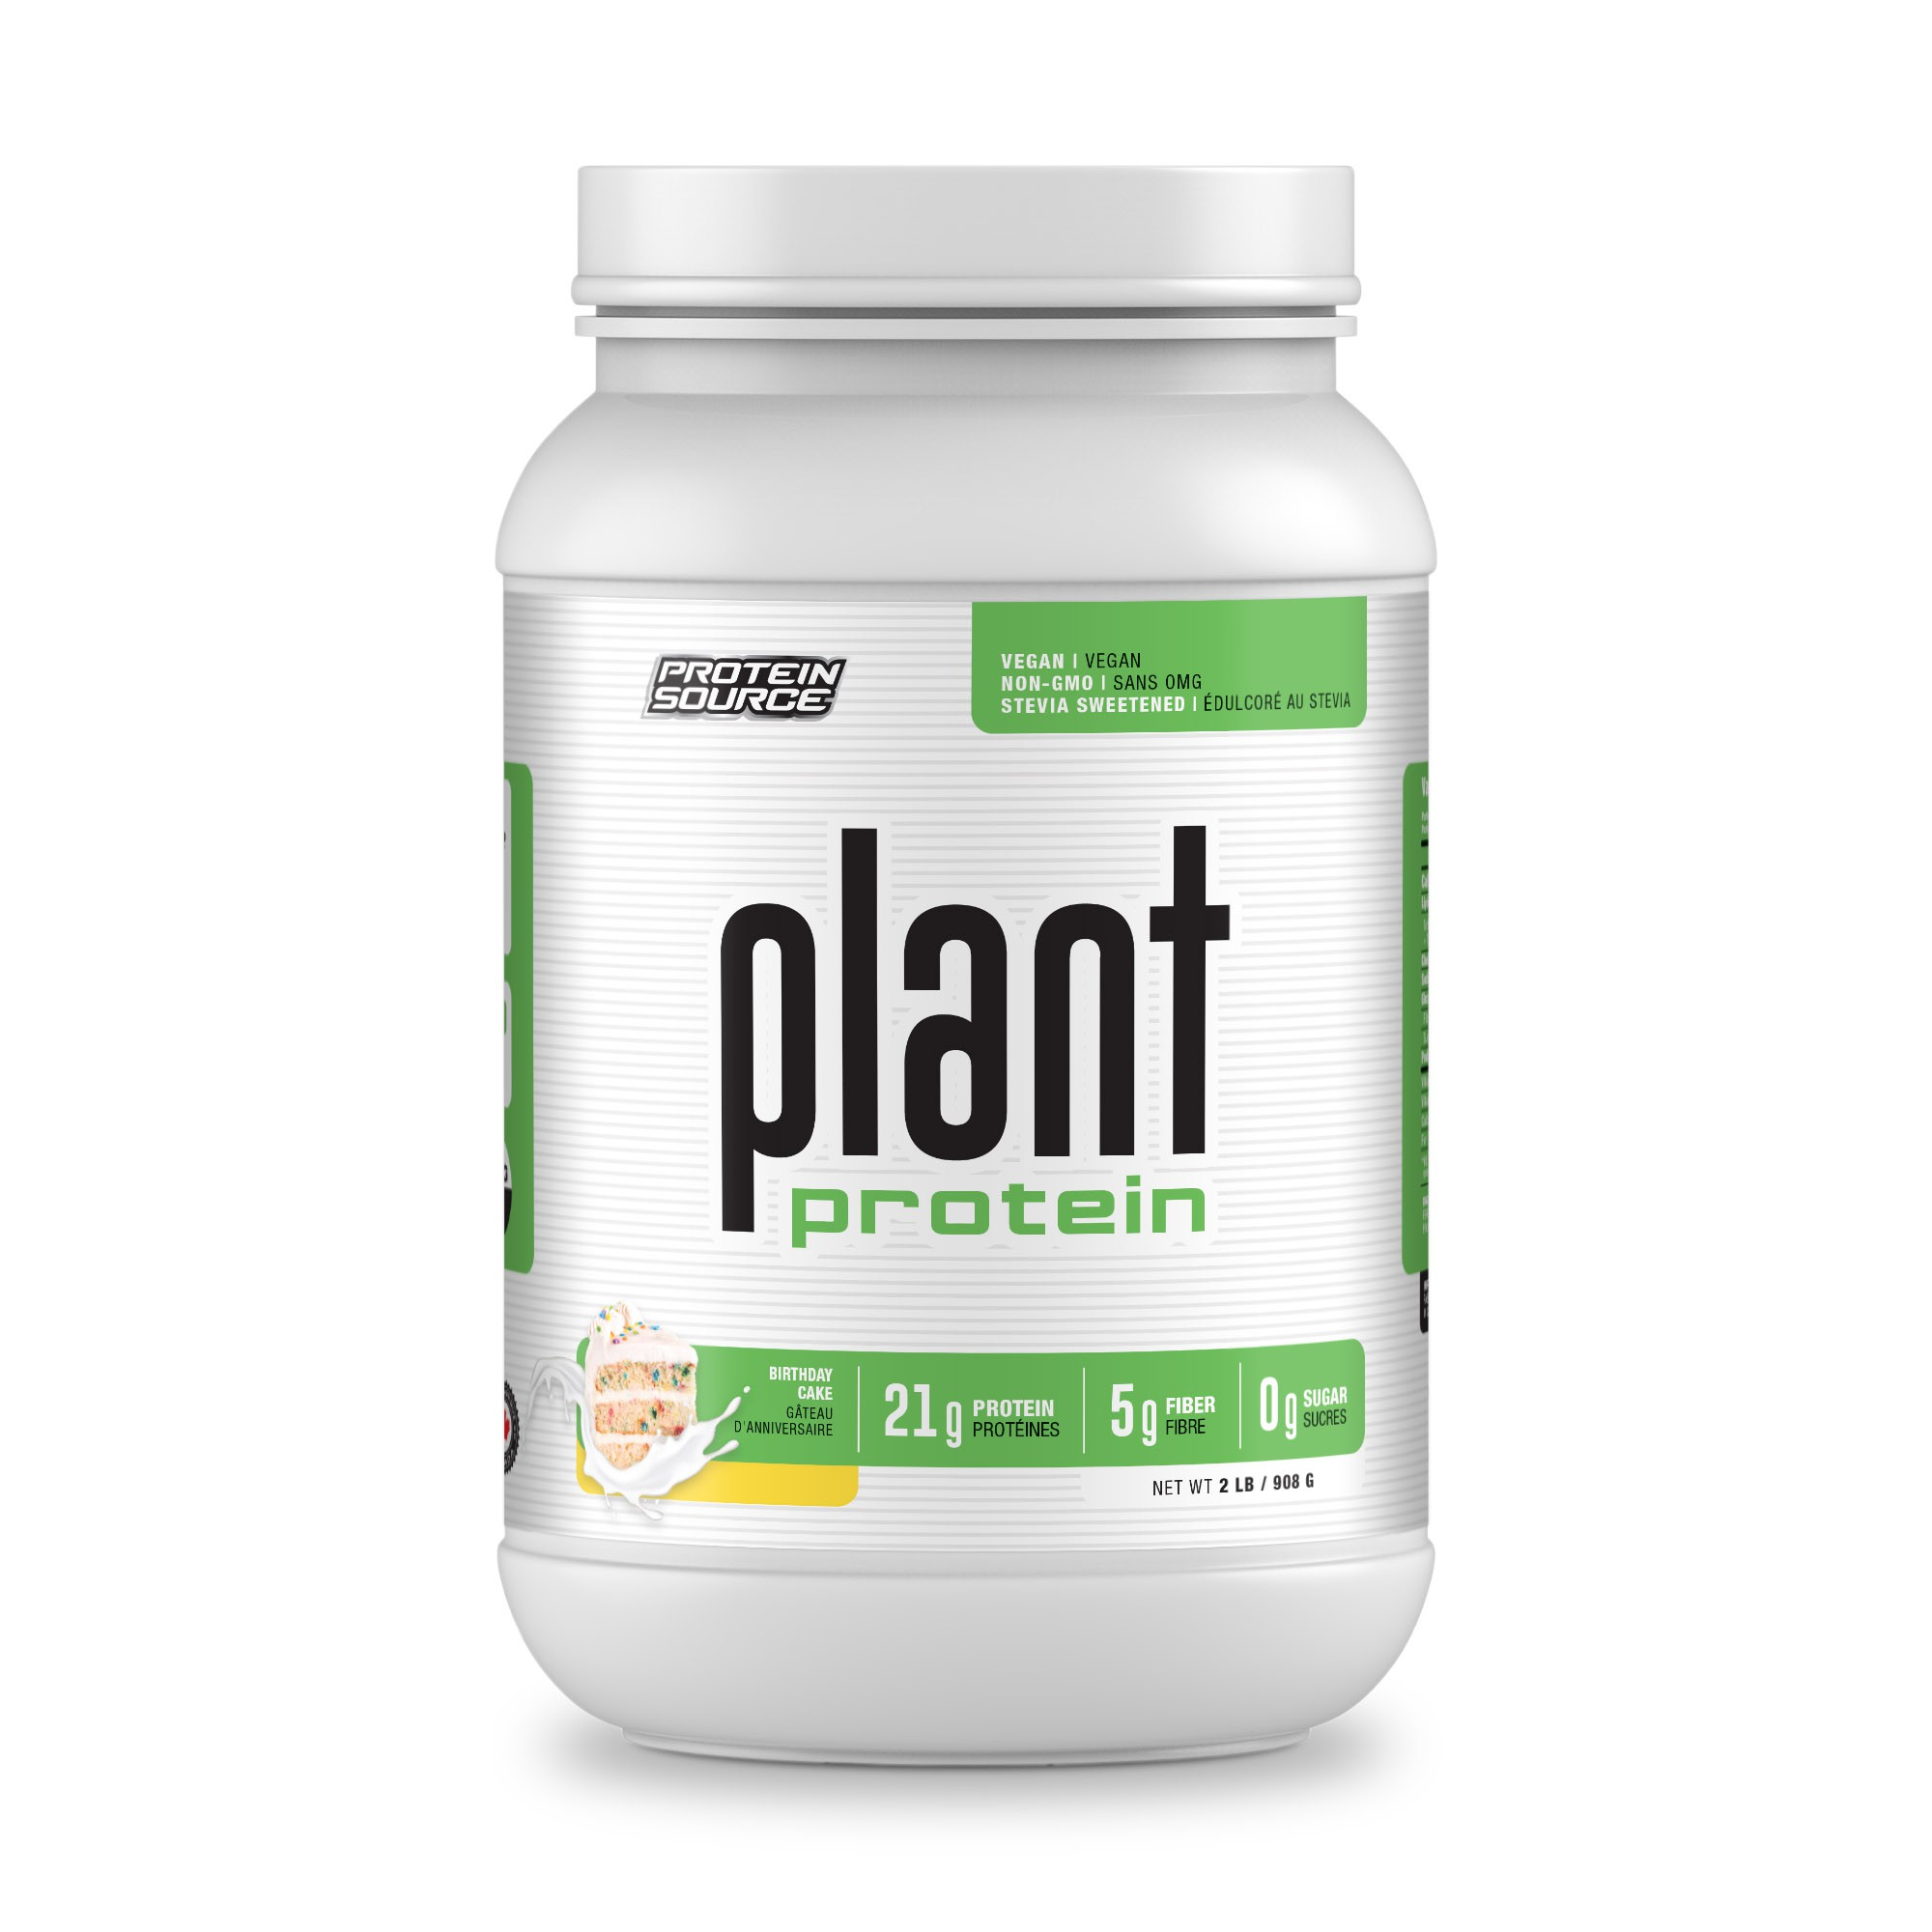 PROTEIN SOURCE - Plant Based Products - 2Lb and 5Lb Labels